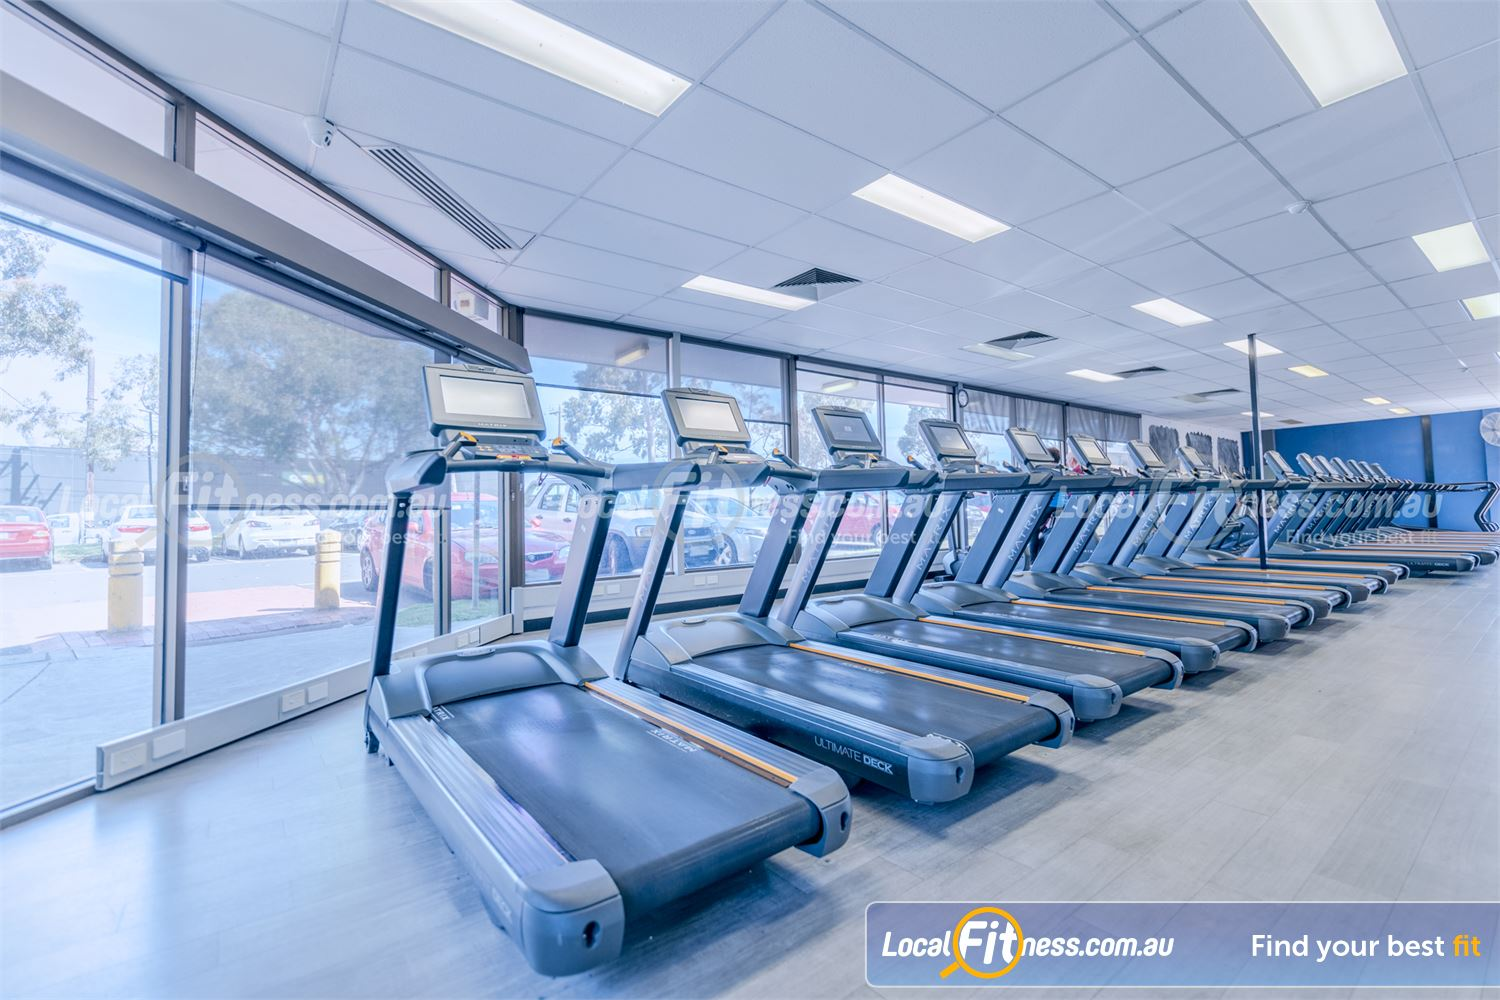 Goodlife Health Clubs Dingley Village Welcome to the Goodlife 24 Hour Dingley gym.